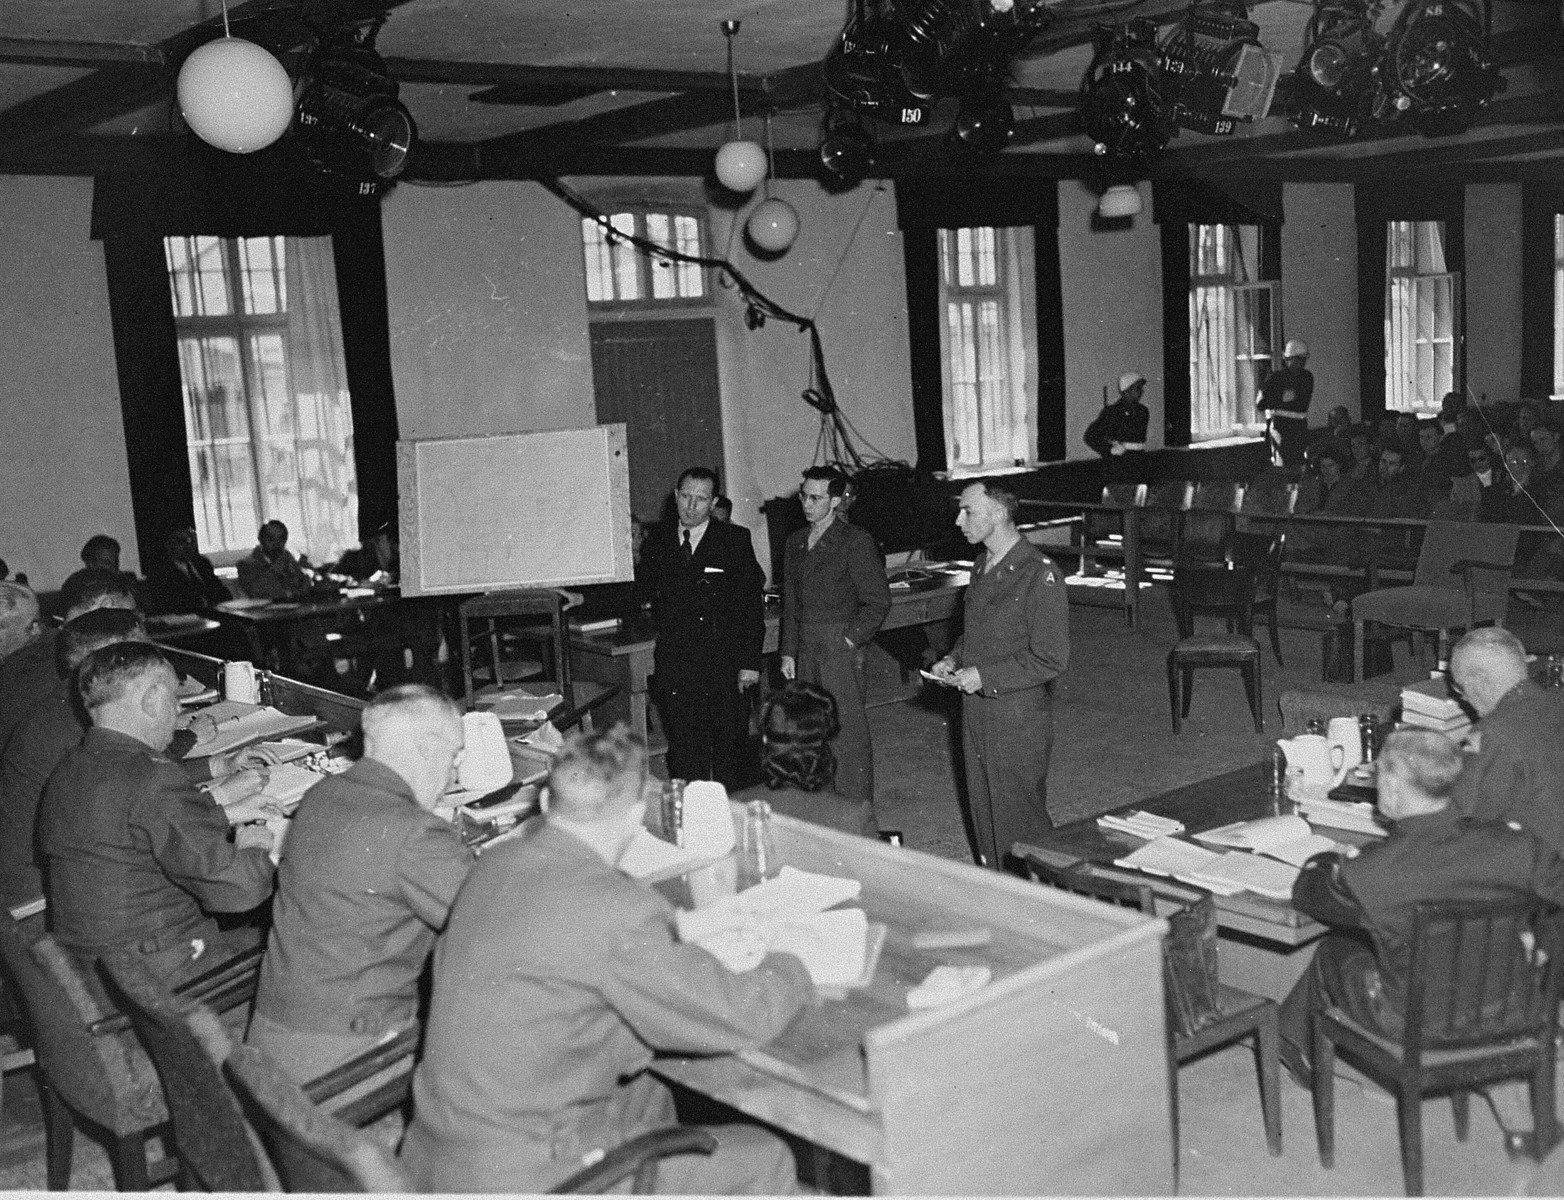 A witness presents evidence to the tribunal at the trial of 61 former camp personnel and prisoners from Mauthausen.  Standing at right is U.S. prosecutor William Denson.